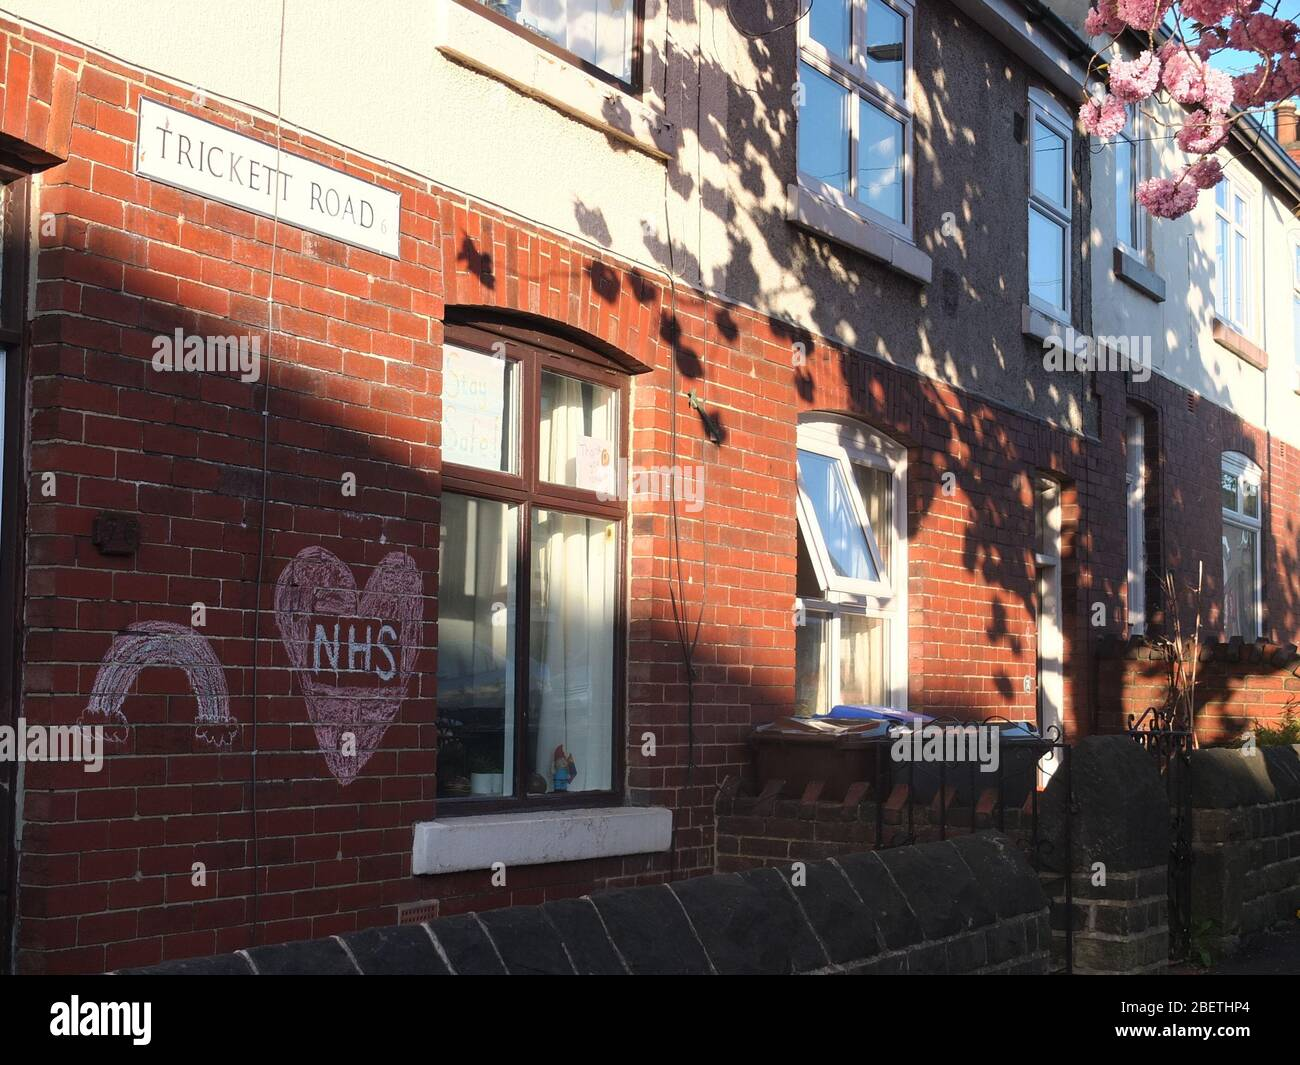 A message of support and gratitude to the NHS with a rainbow chalked on the wall of a house on Trickett Road, Sheffield during the Coronavirus crisis Stock Photo